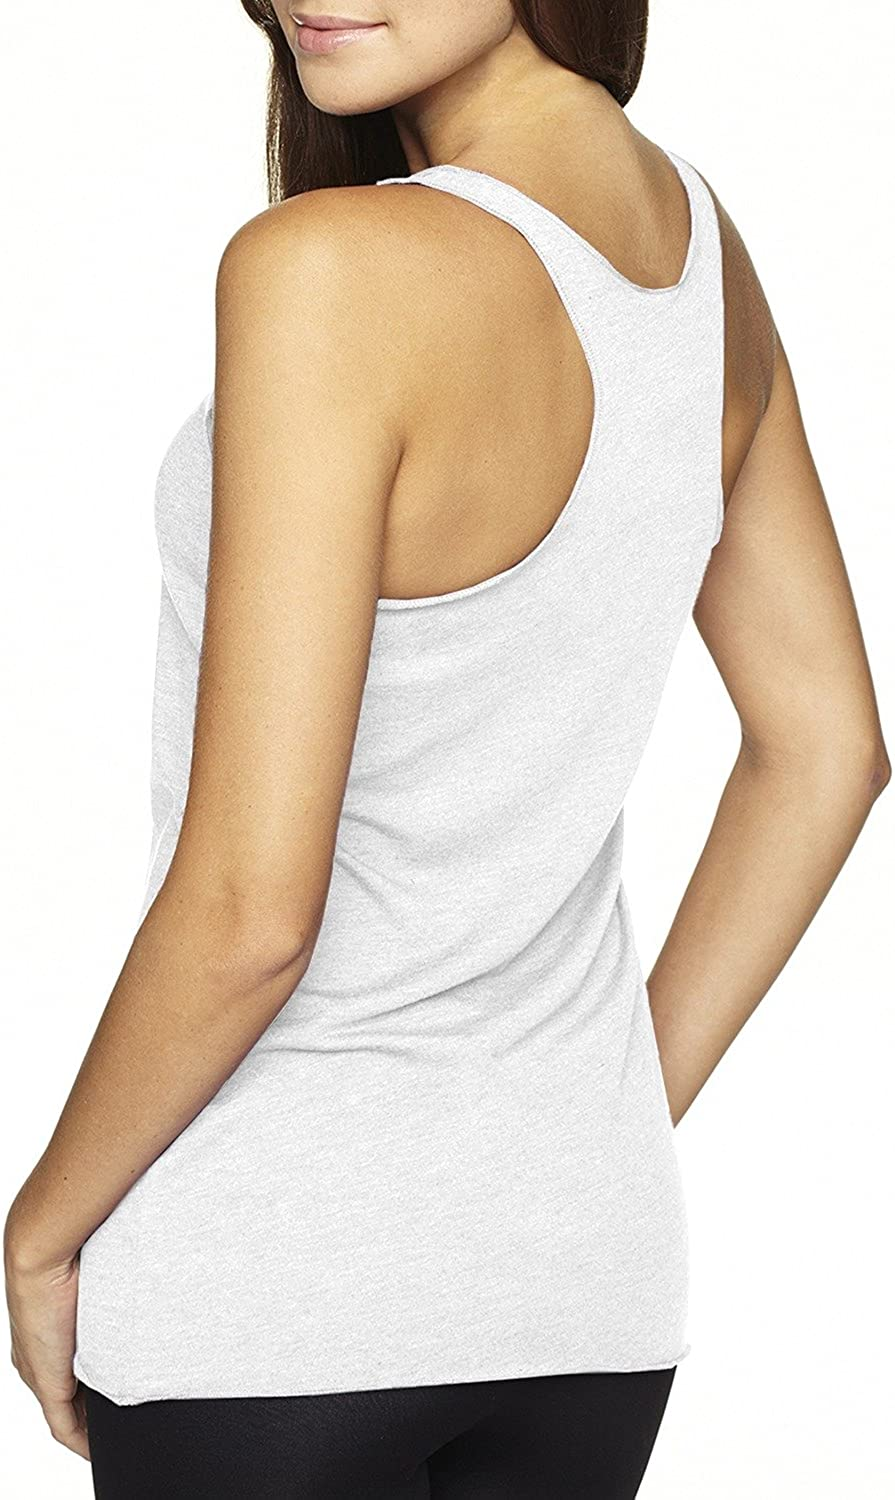 LIFE IS BALANCE Love The Game Women/'s Tennis Tri-Blend Racer-Back Tank top